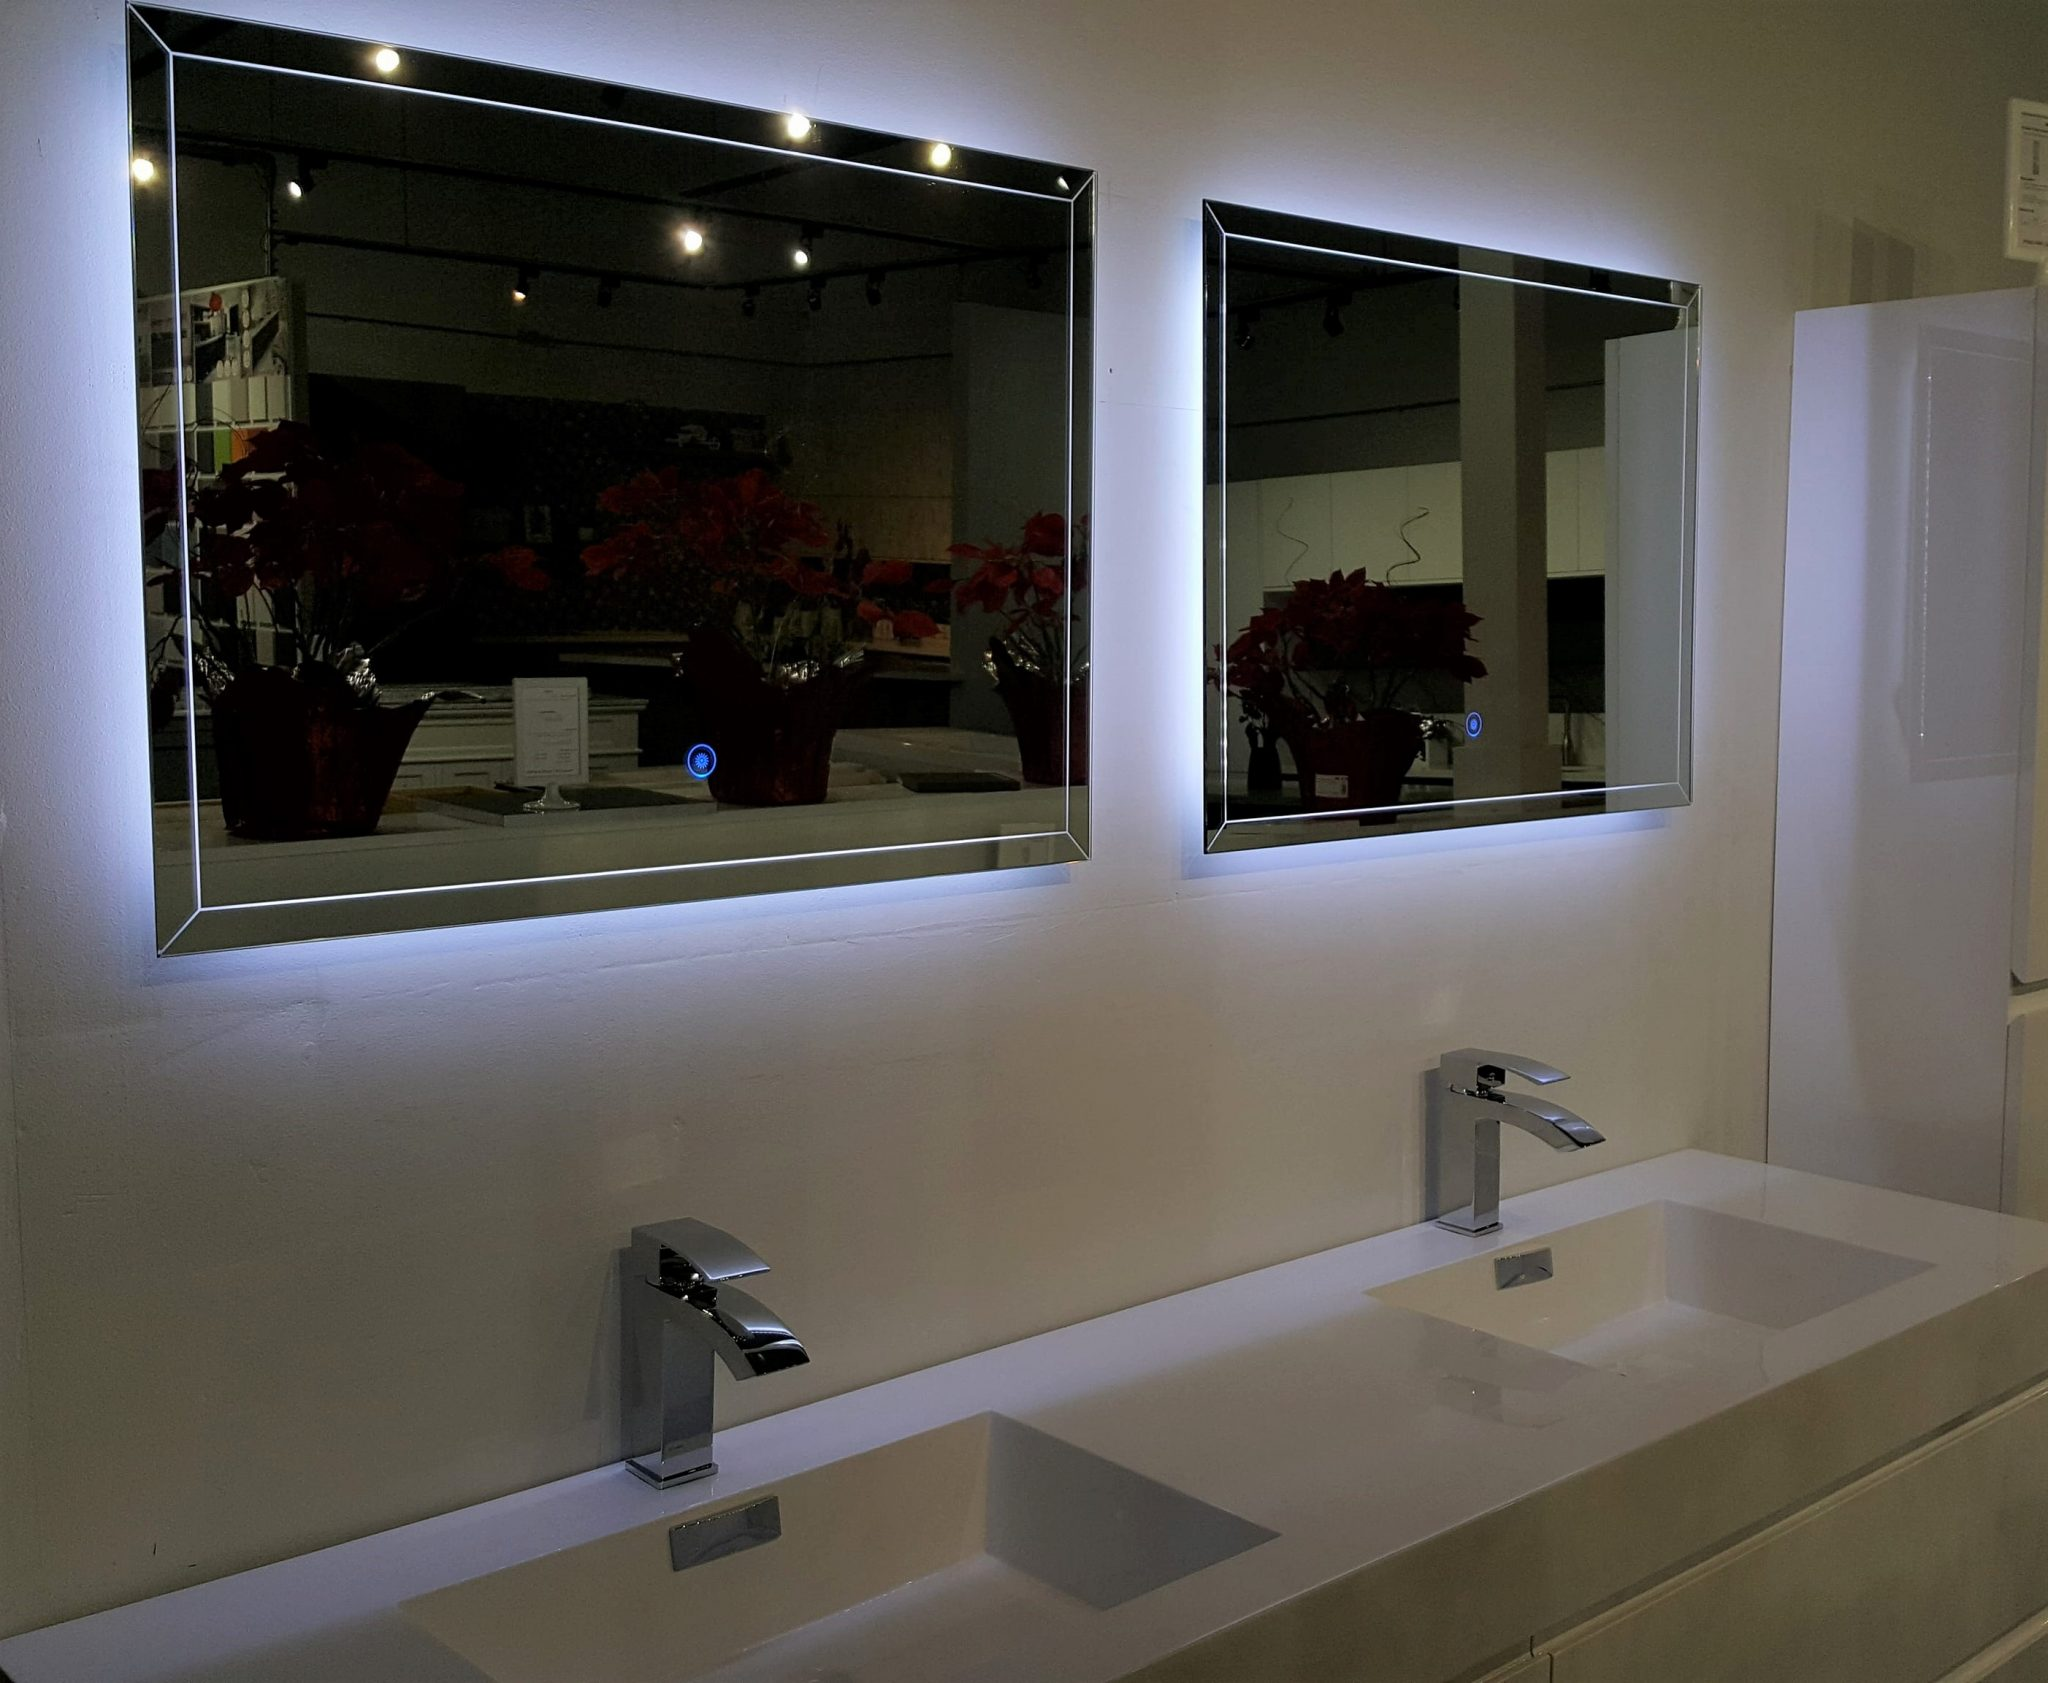 LED-backlit-mirror-for-bathroom-vanities